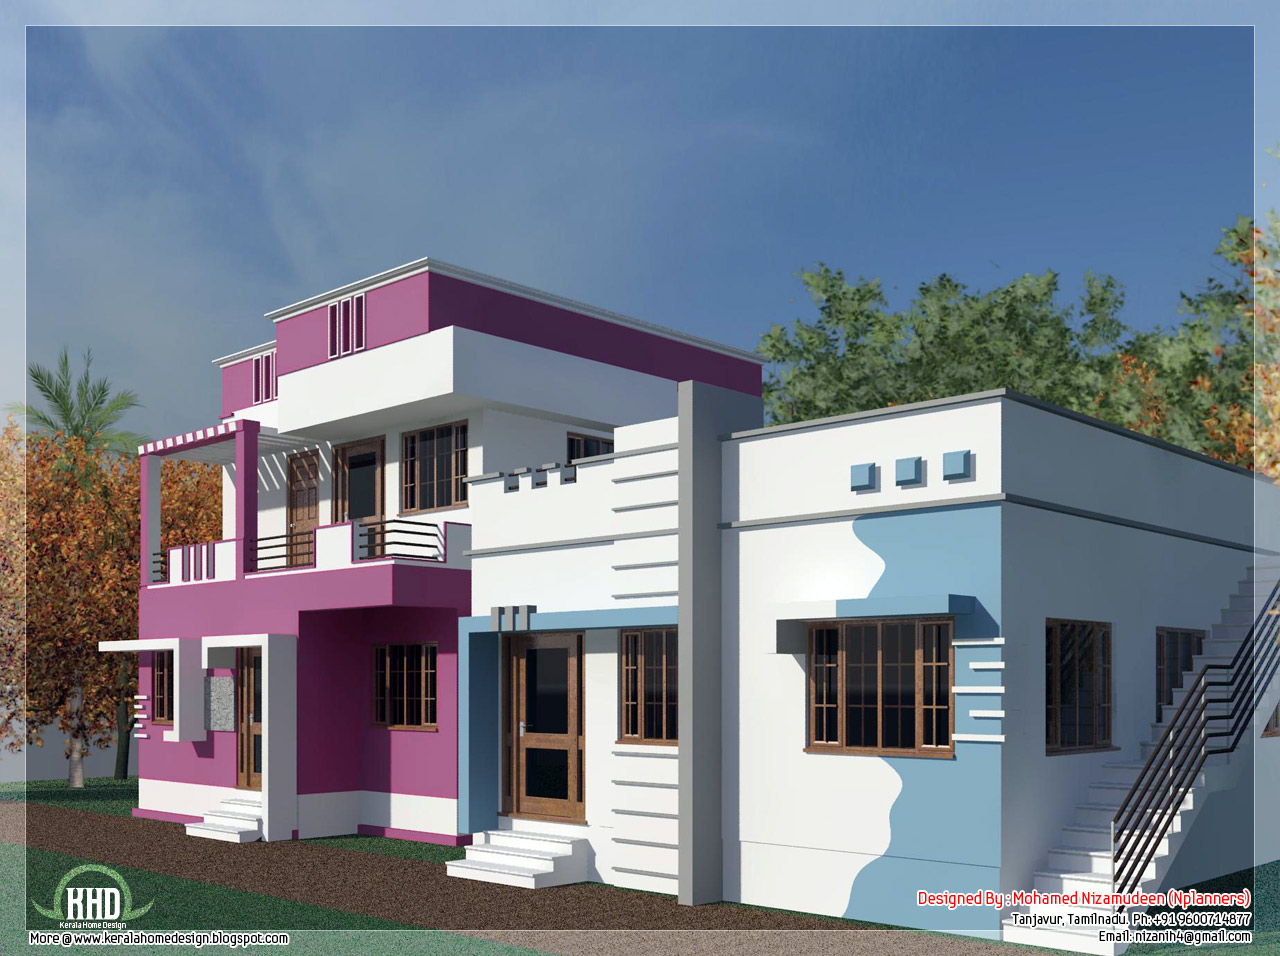 Tamilnadu model home design in 3000 kerala home for Indian house portico models